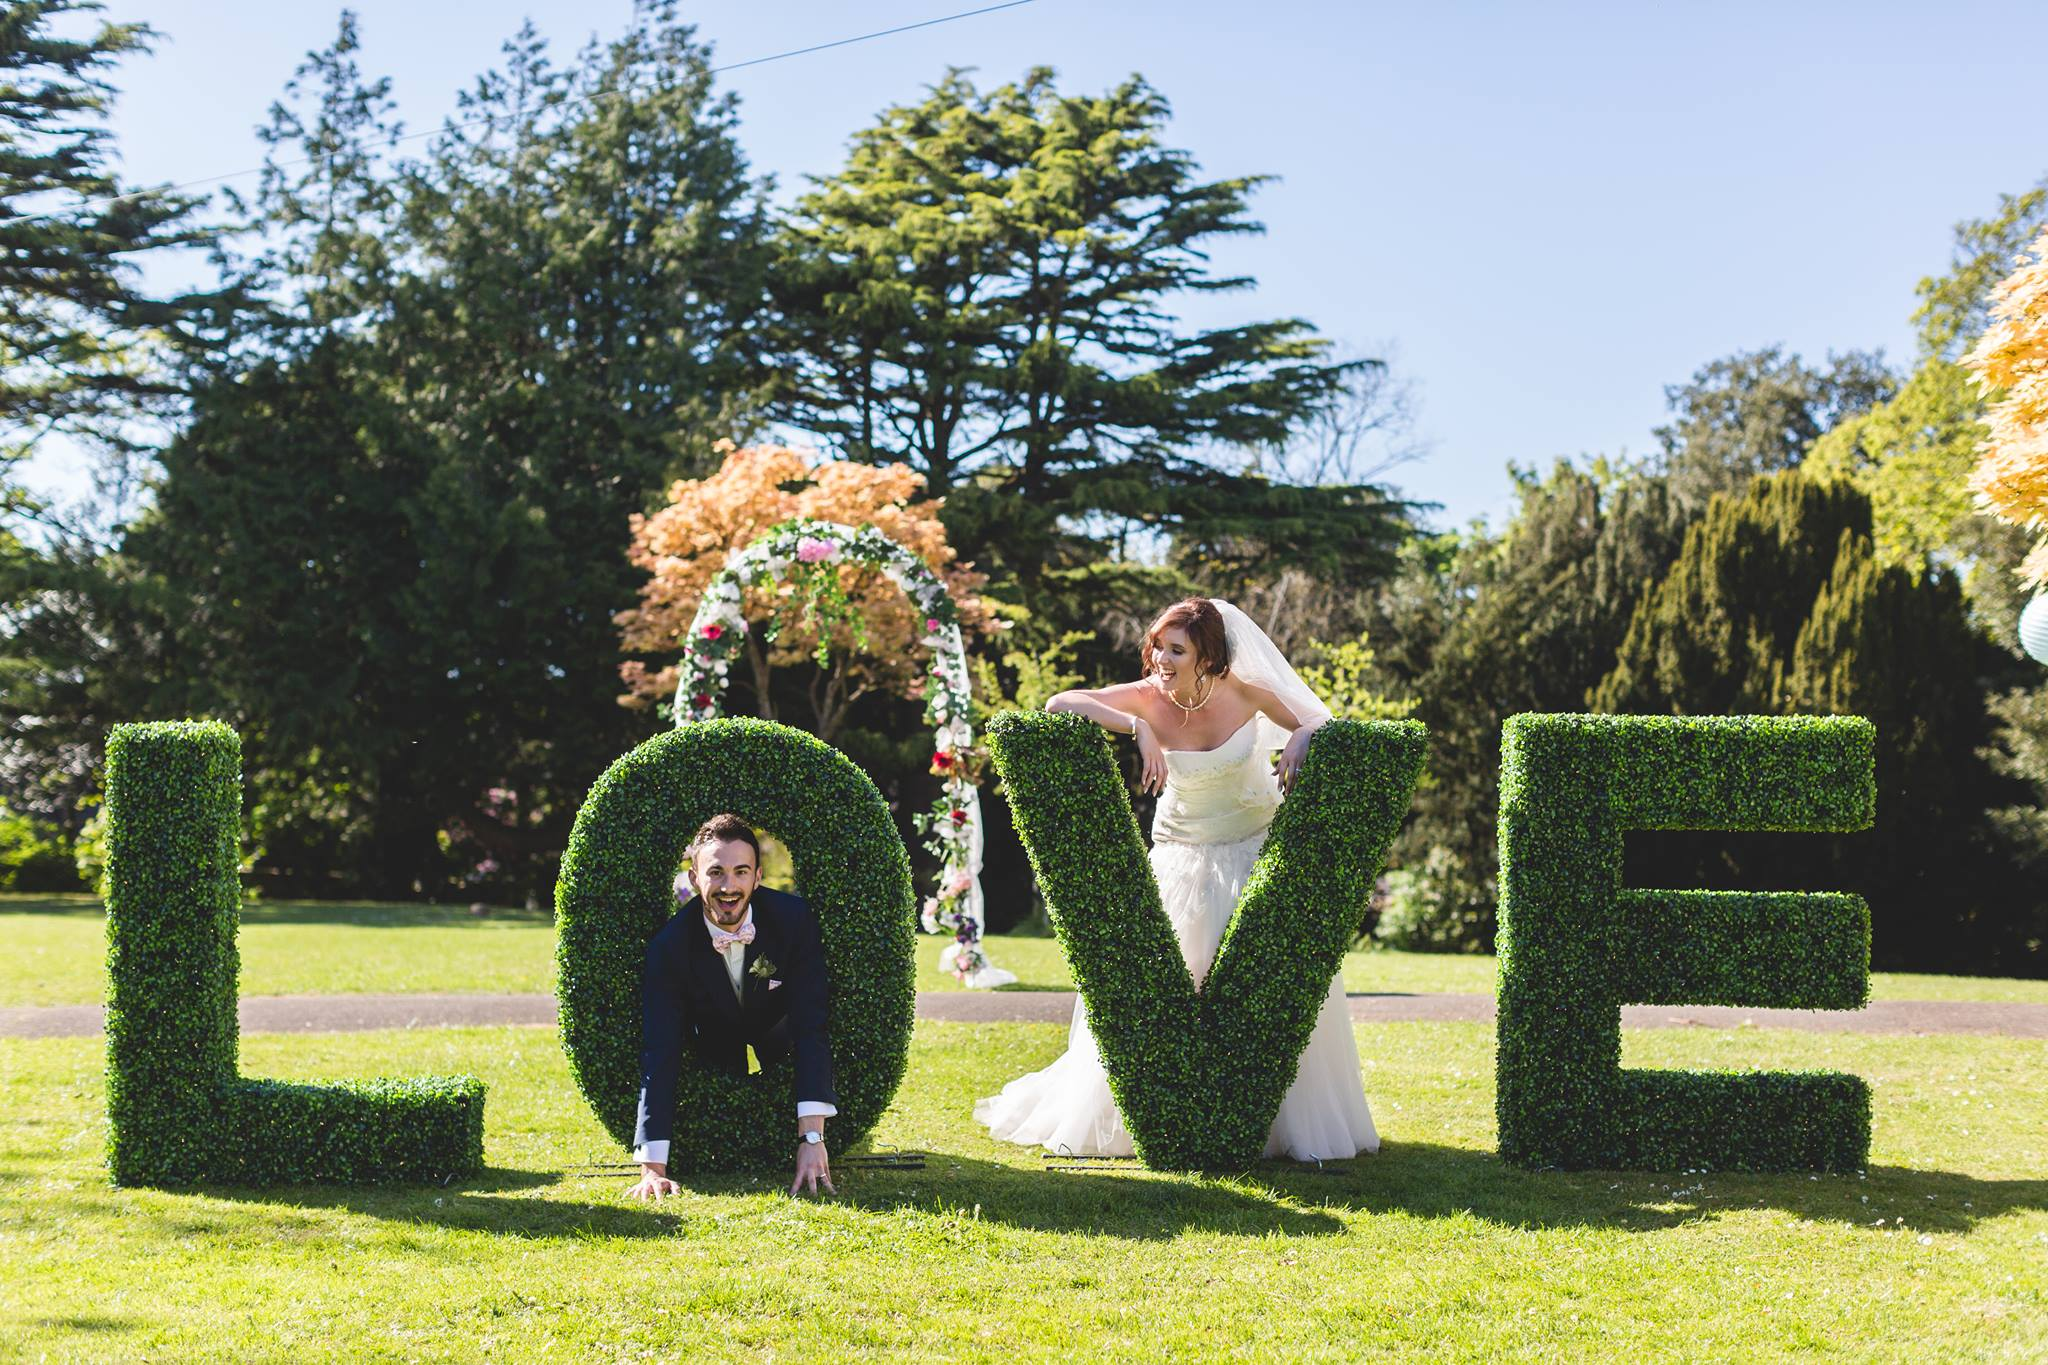 Topiary LOVE LETTERS £150.00   These Unique Topiary Love letters will be a talk of your wedding! We will set them up at your preferred spot in the garden on the morning of your wedding and we will pick them up the next day. Bring a bit of greenery indoors with LED fairy lights by transferring them inside for the evening reception.